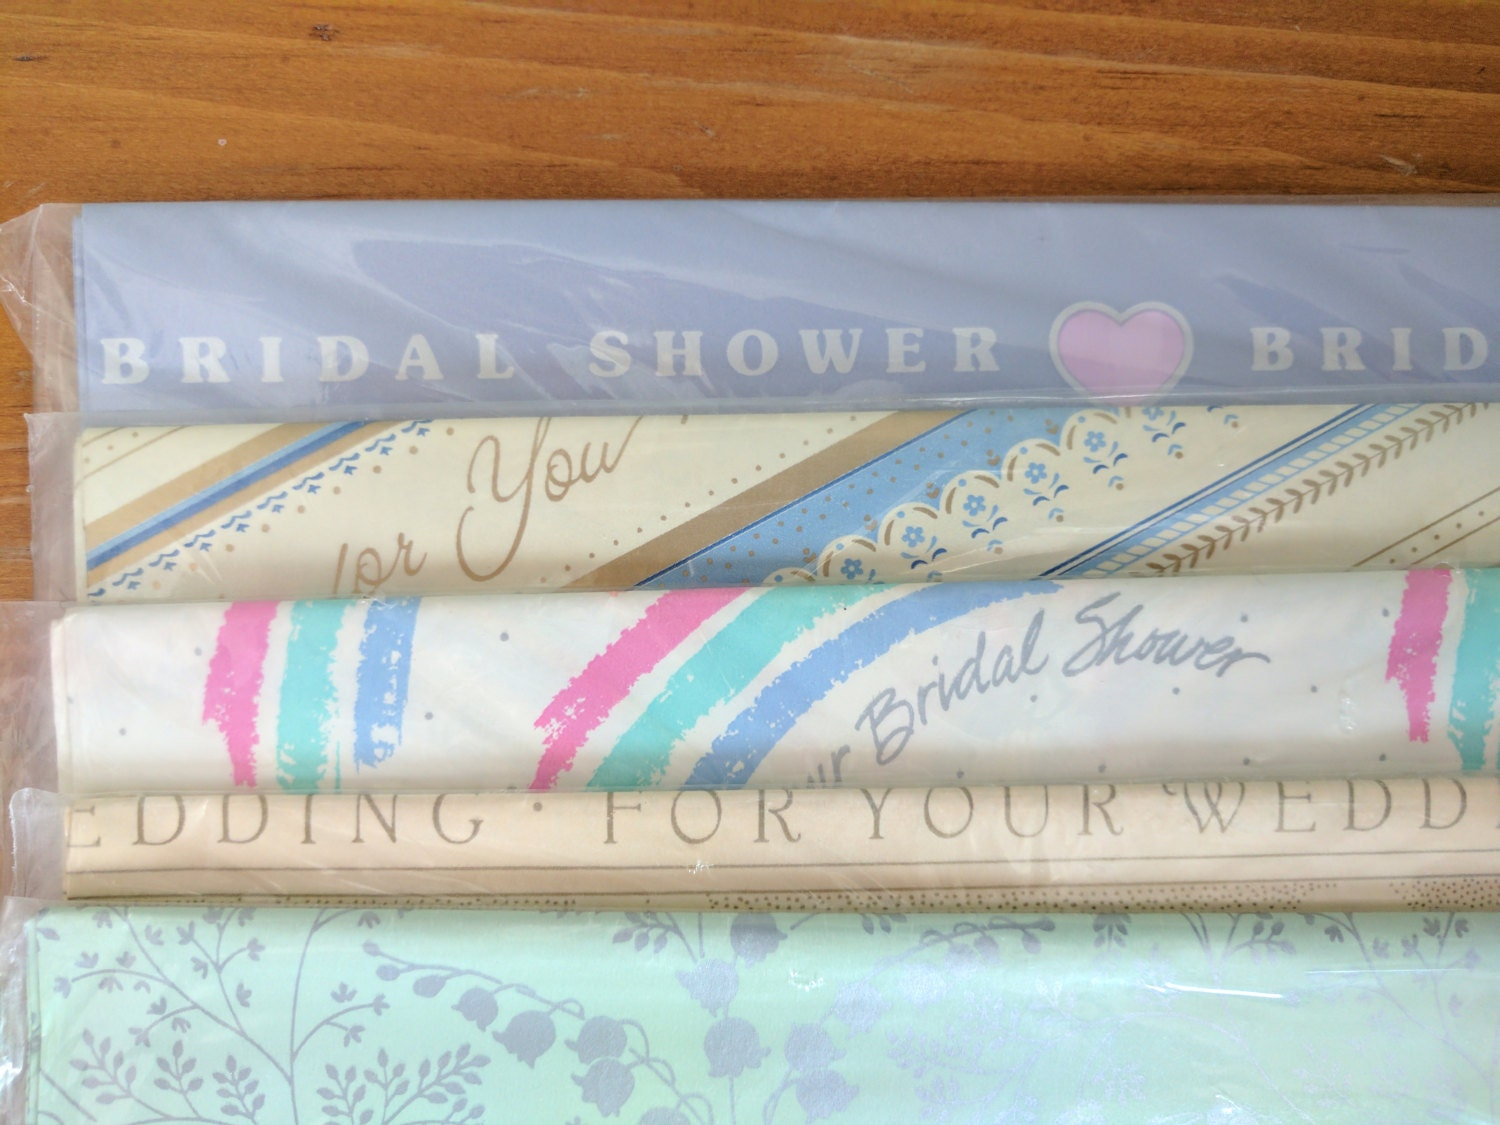 Wedding Gift Paper: Wedding And Bridal Shower Wrapping Paper New In Plastic 8